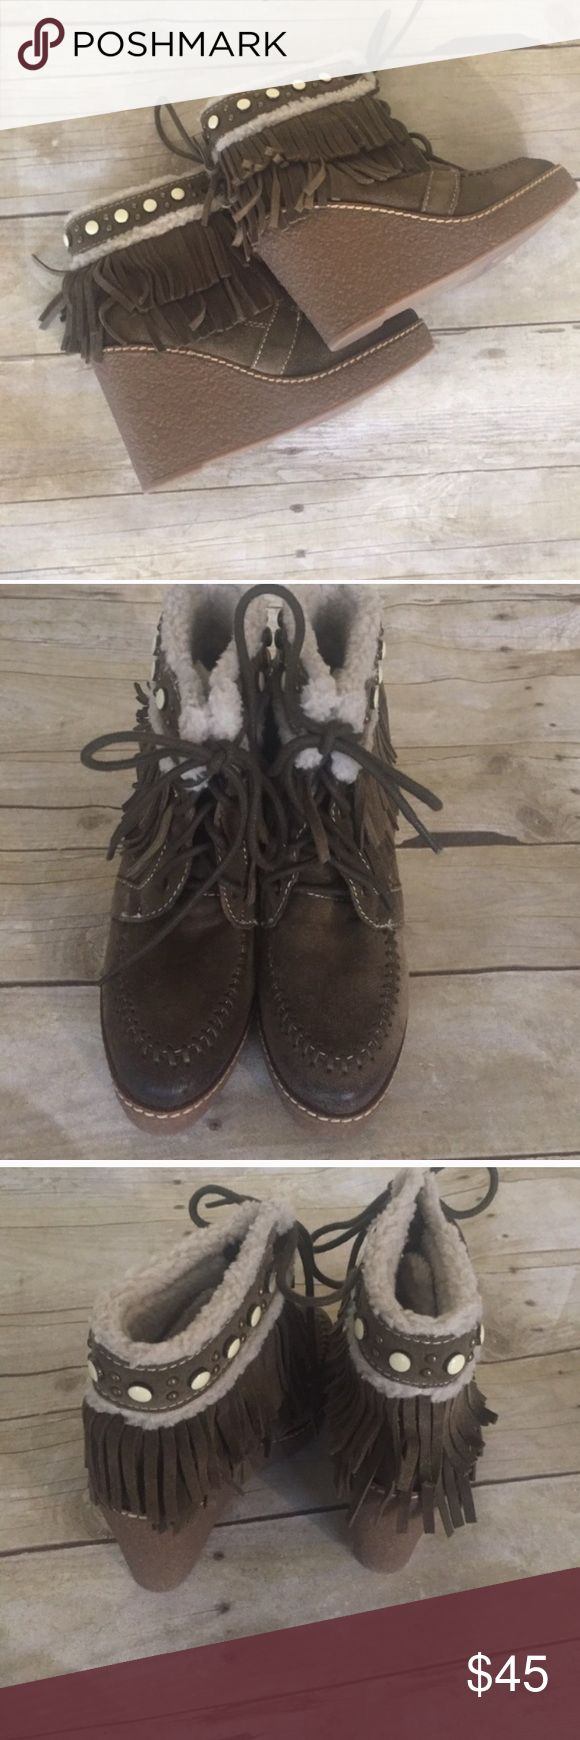 🎉HP🎉Sam Edelman fringe ankle boots NWT size 5 Sam Edelman fringe ankle boots size 5 NWT in Olive.  4 inches high. 4.5 shaft. Approx measurements Sam Edelman Shoes Ankle Boots & Booties